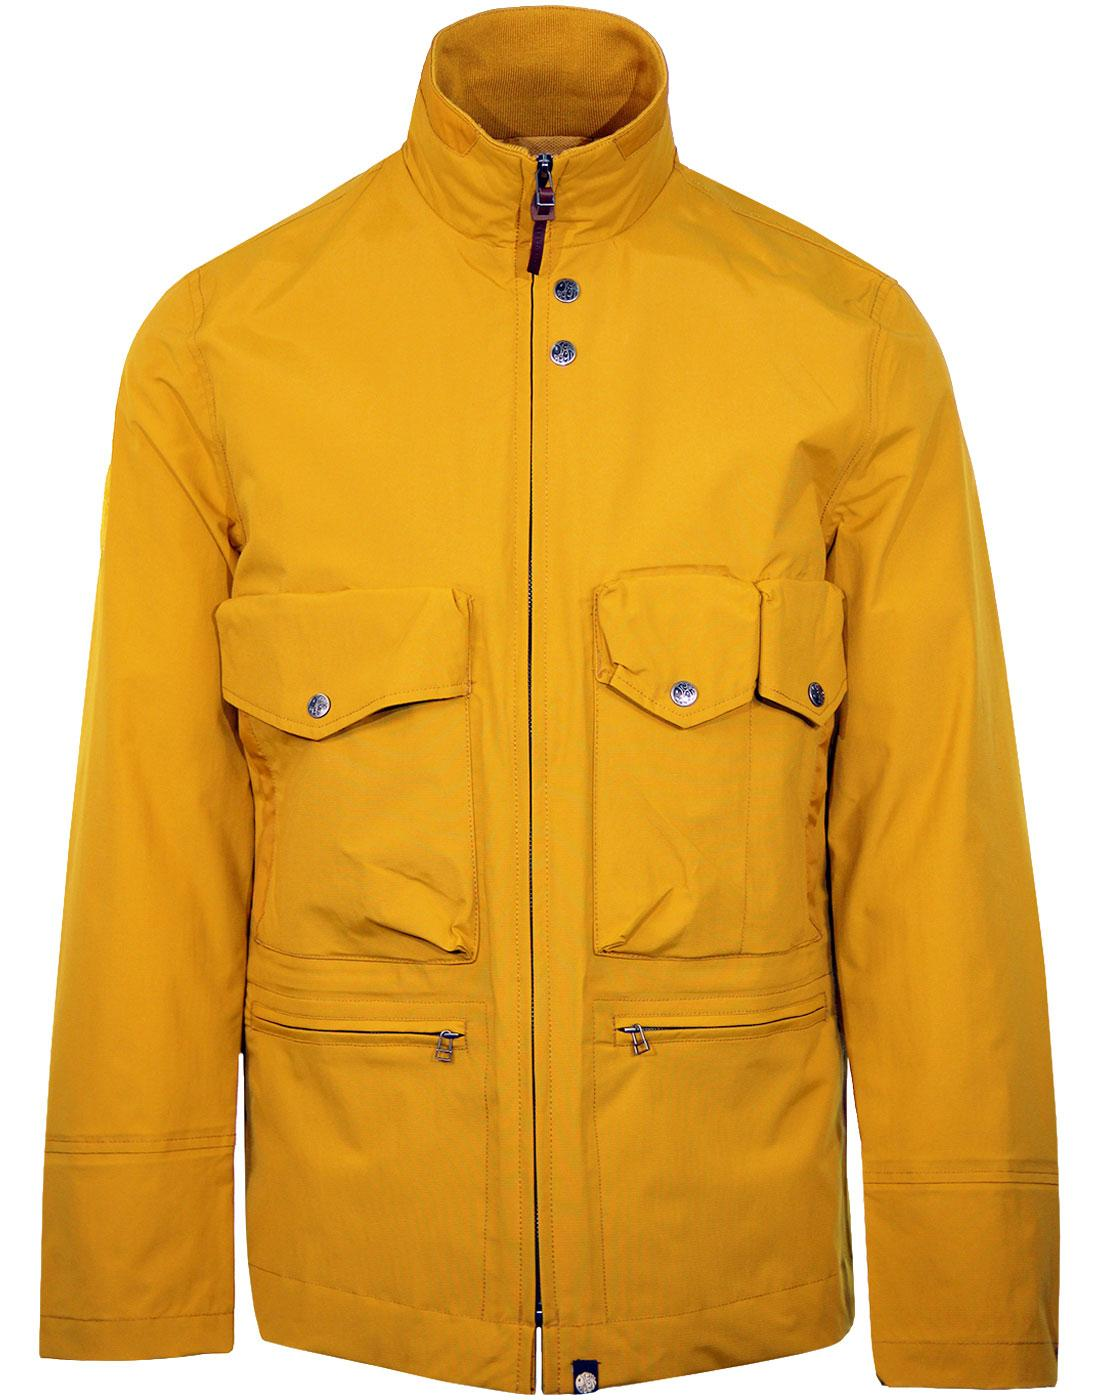 PRETTY GREEN Retro Military Seam Sealed M65 Jacket